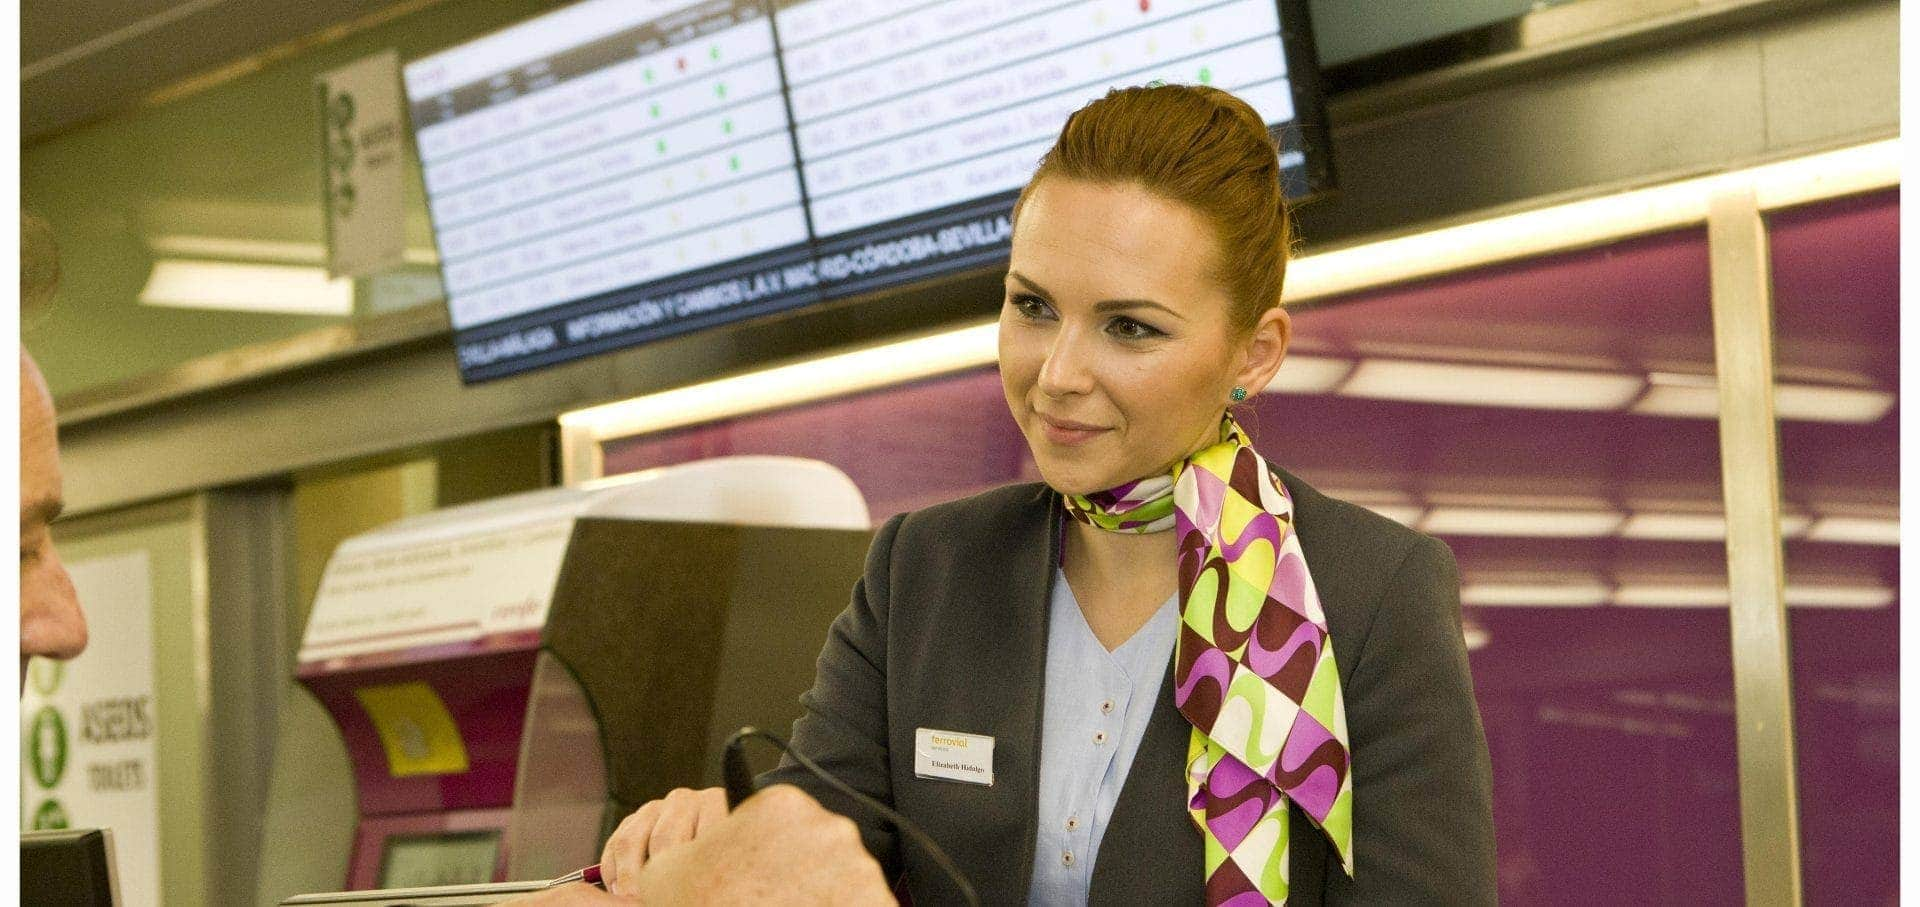 Ferrovial Services to manage Renfe's Ground Passenger Care and